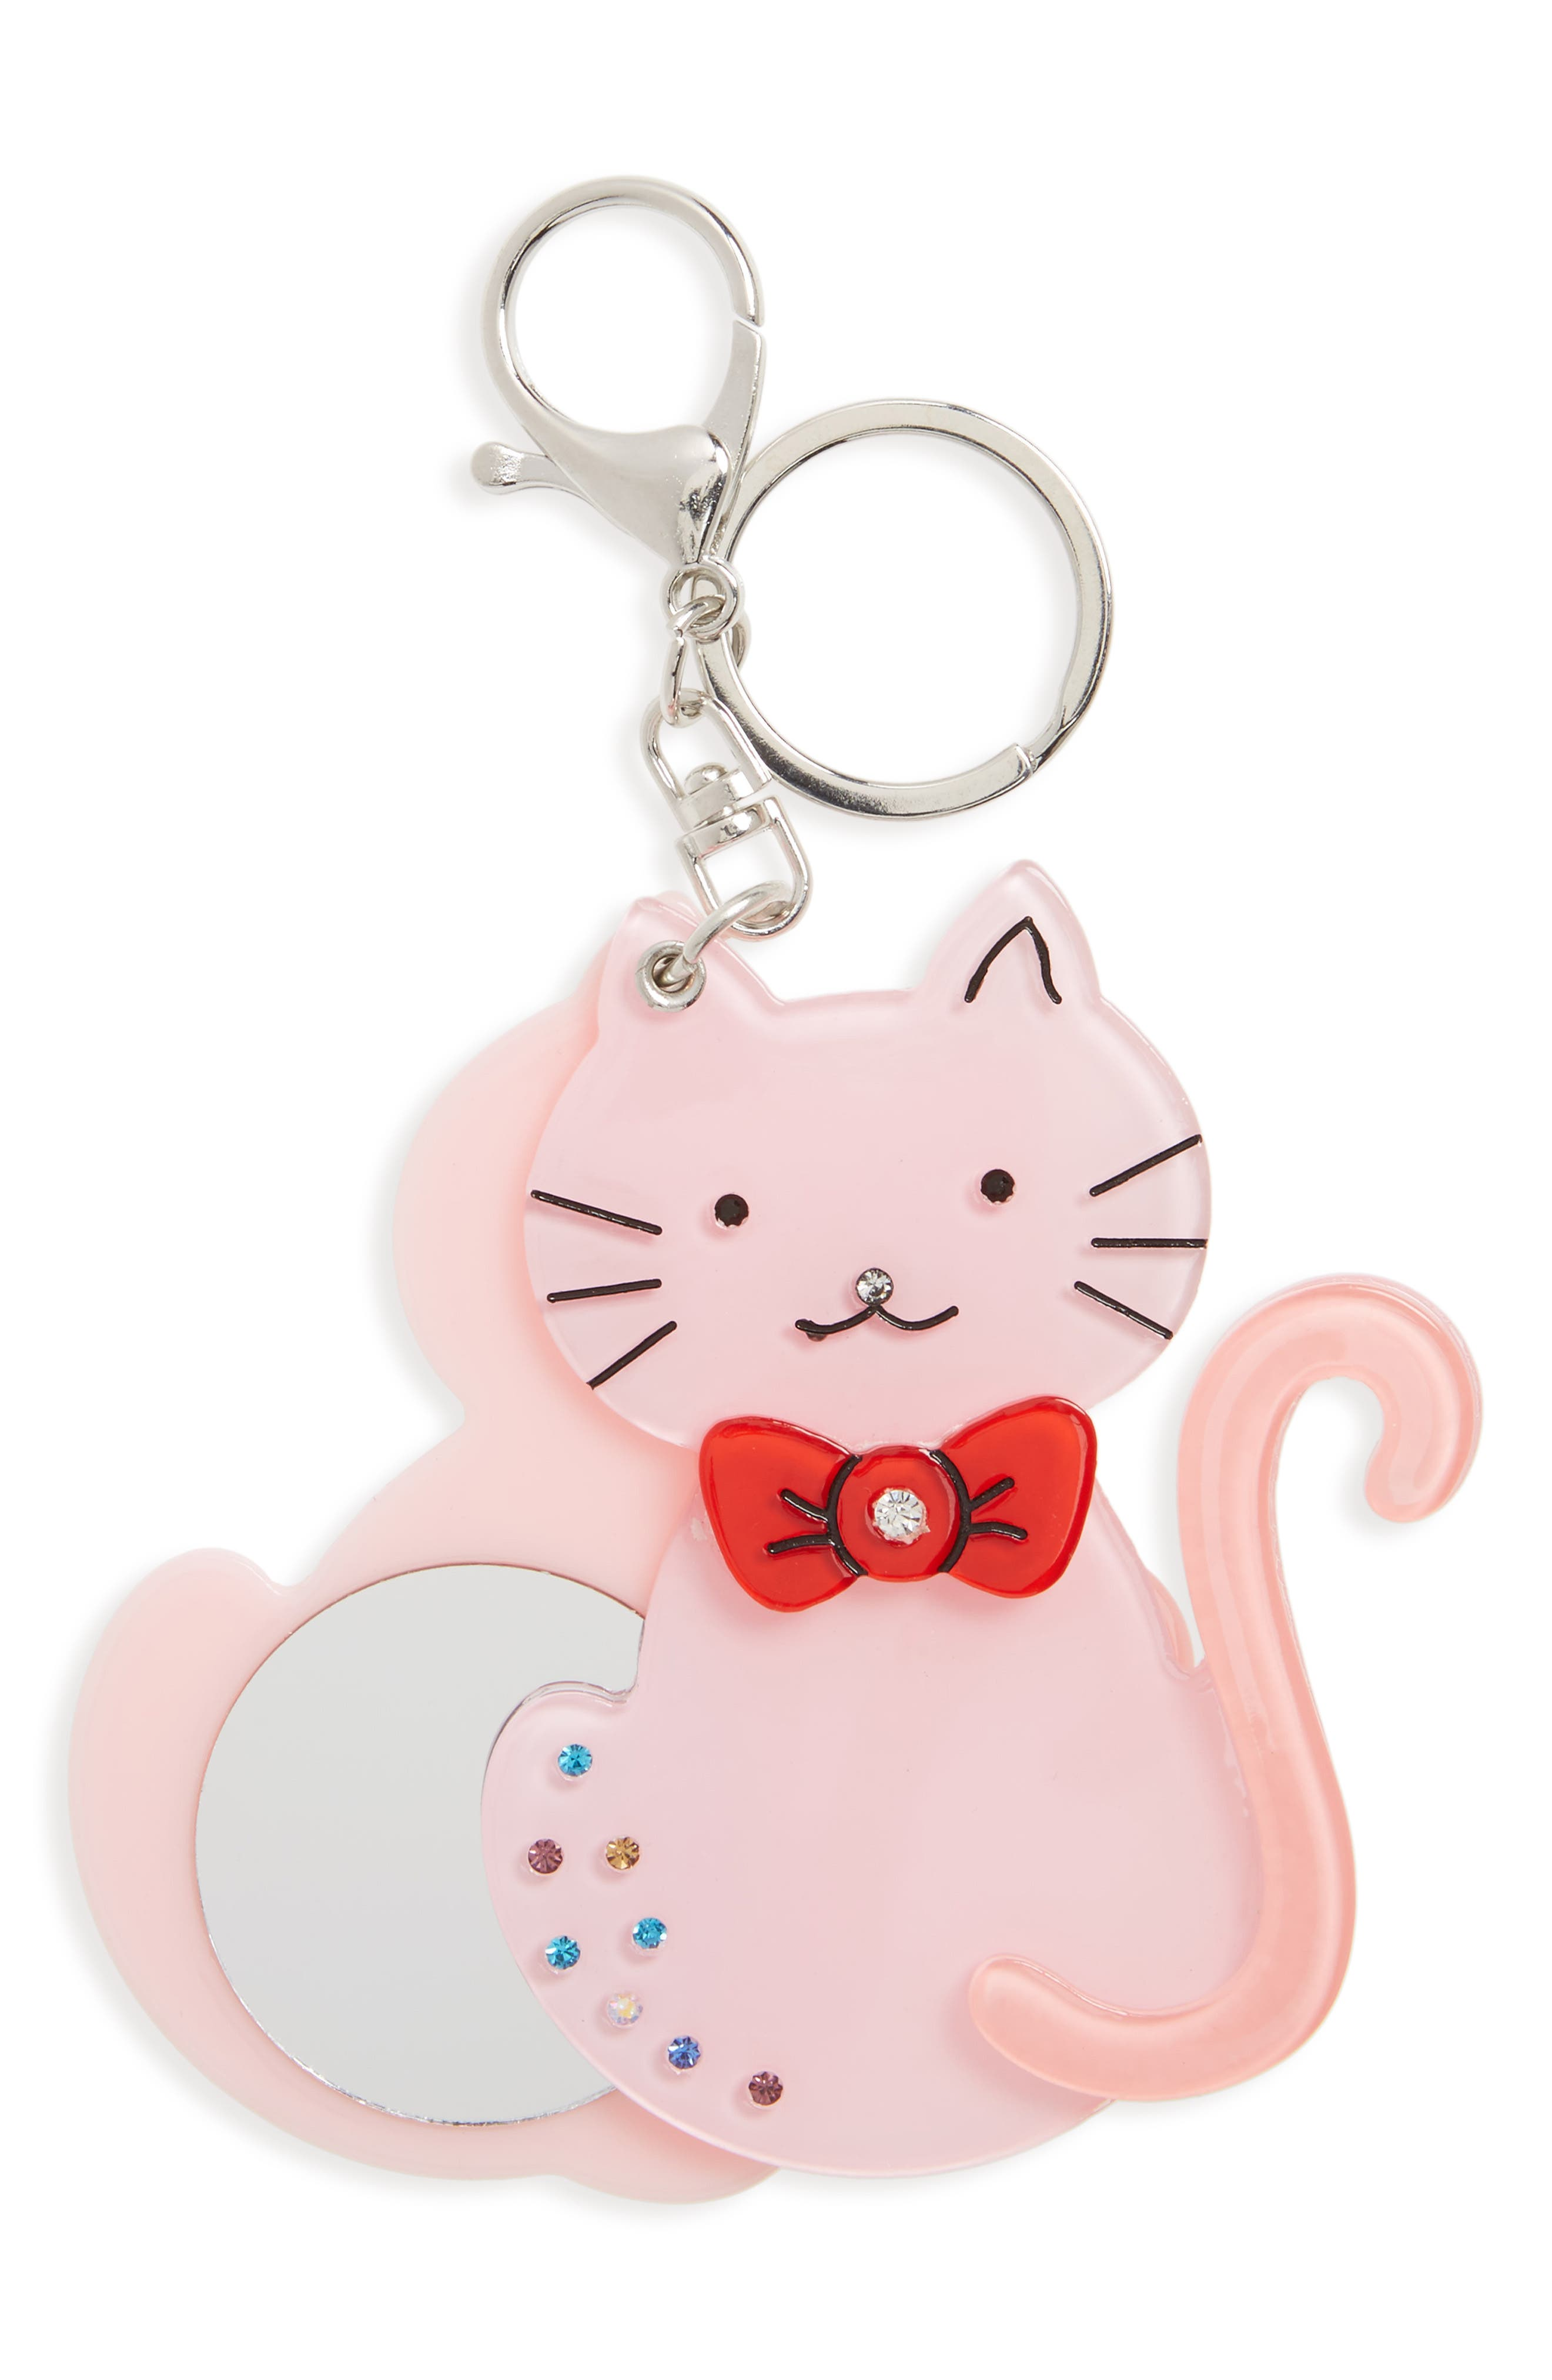 Kitty Mirror Key Chain,                             Main thumbnail 1, color,                             001